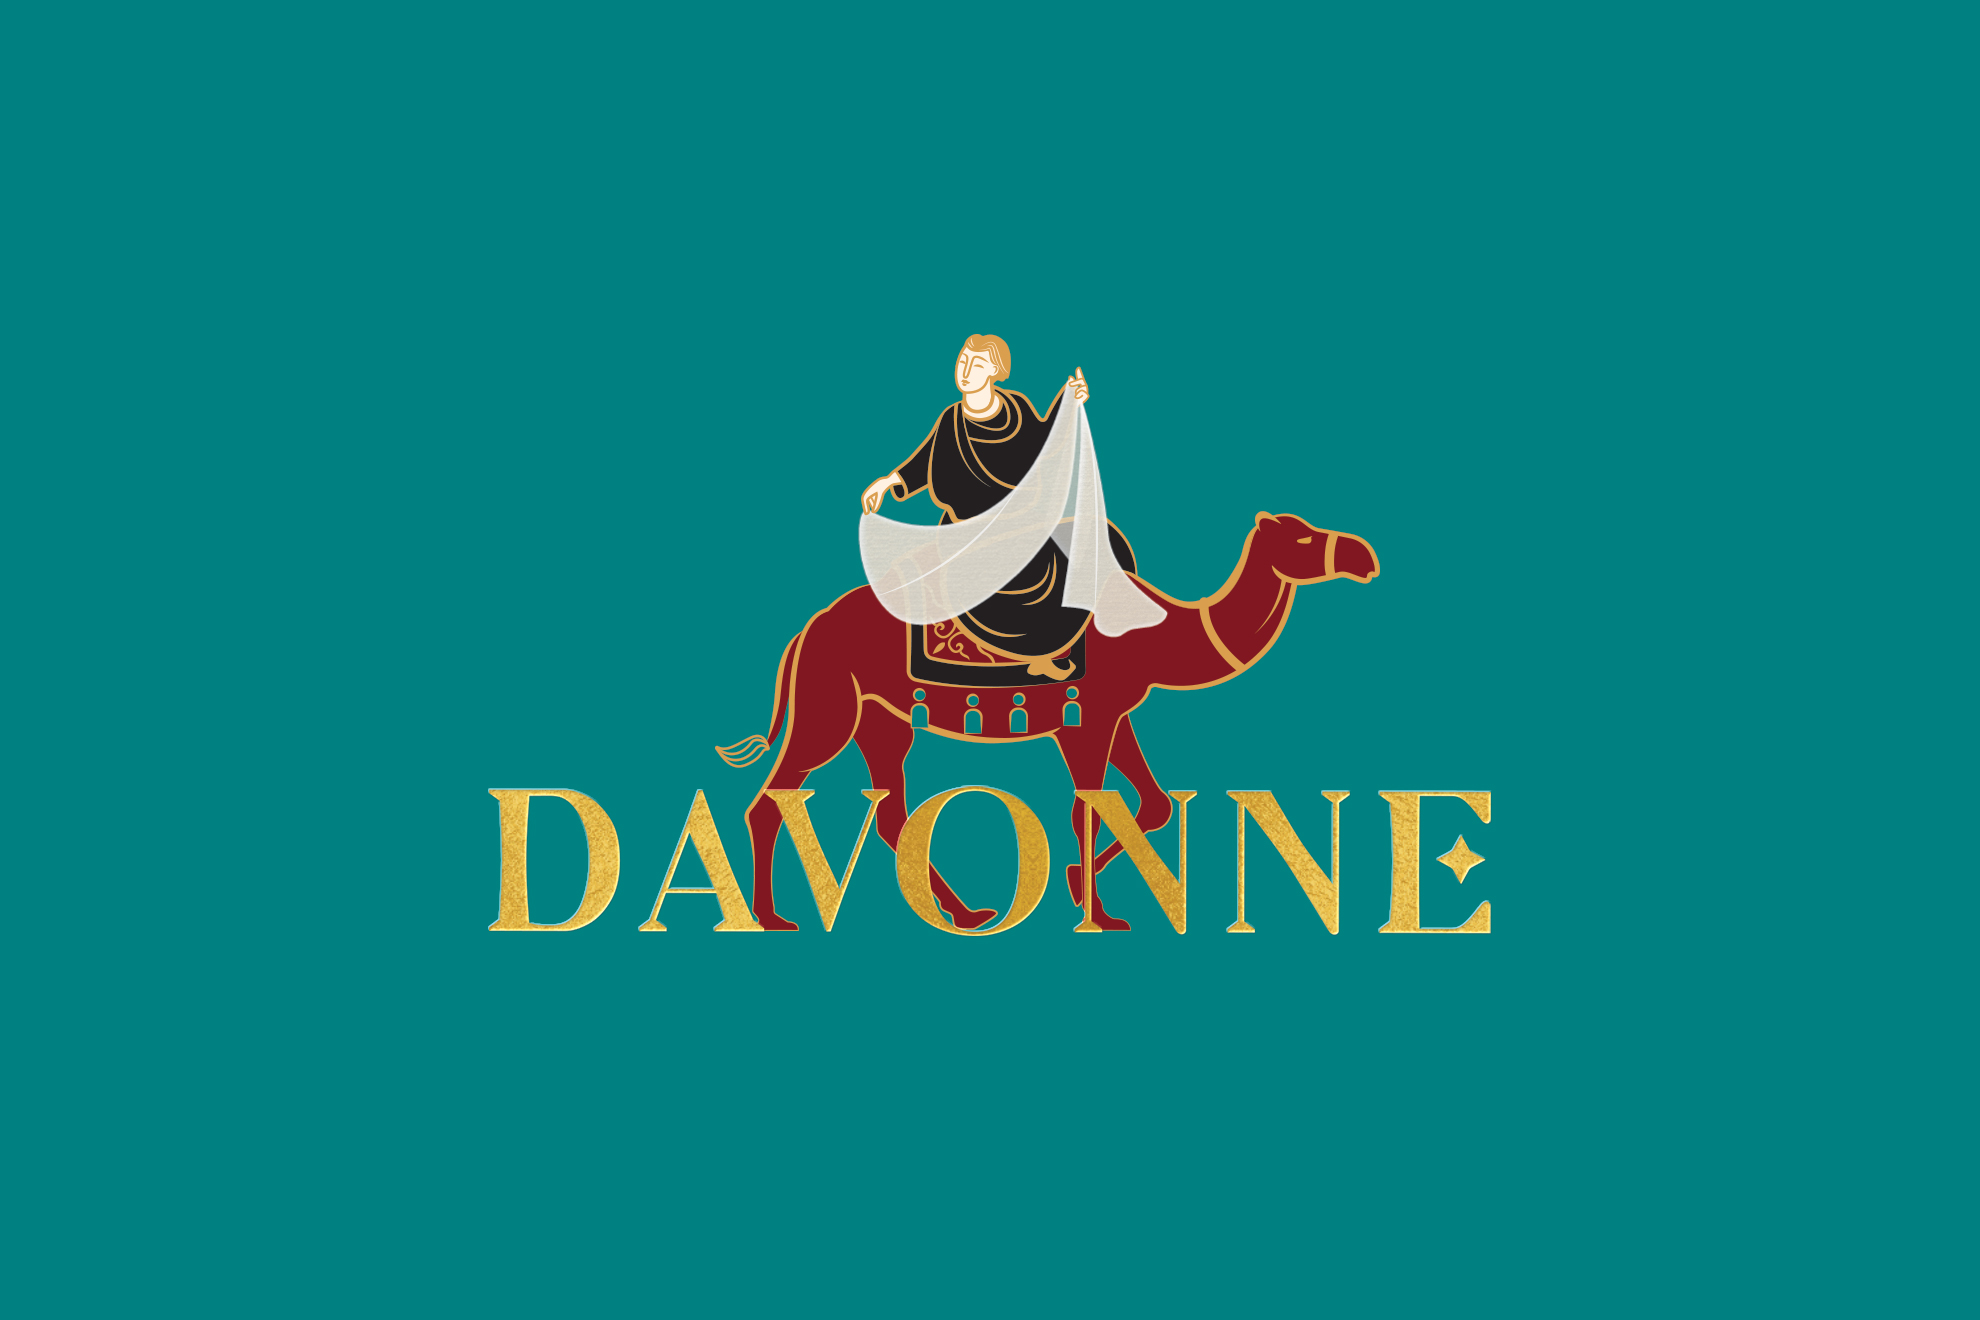 logo design, davonne textile, brand agency, design agency ho chi minh city, logo design, stationary design, packaging design, fashion brand, brand agency in hcmc, xolve branding